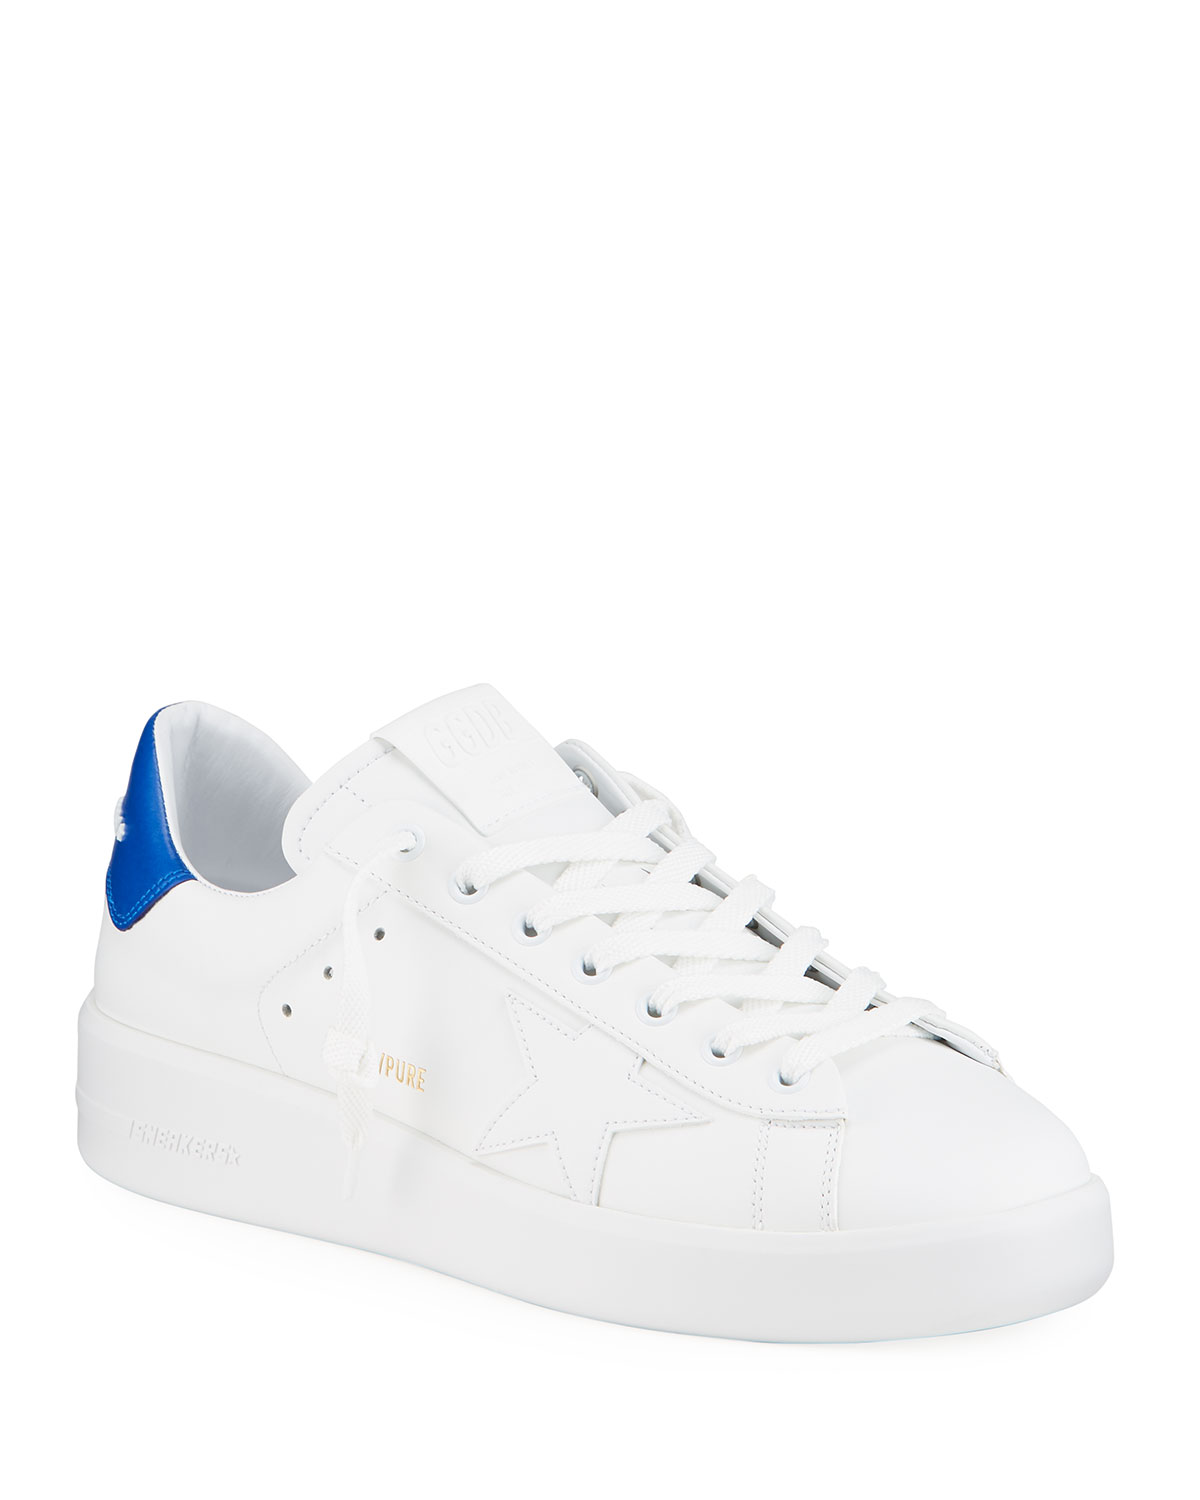 Golden Goose Men's Pure Star Leather Sneakers